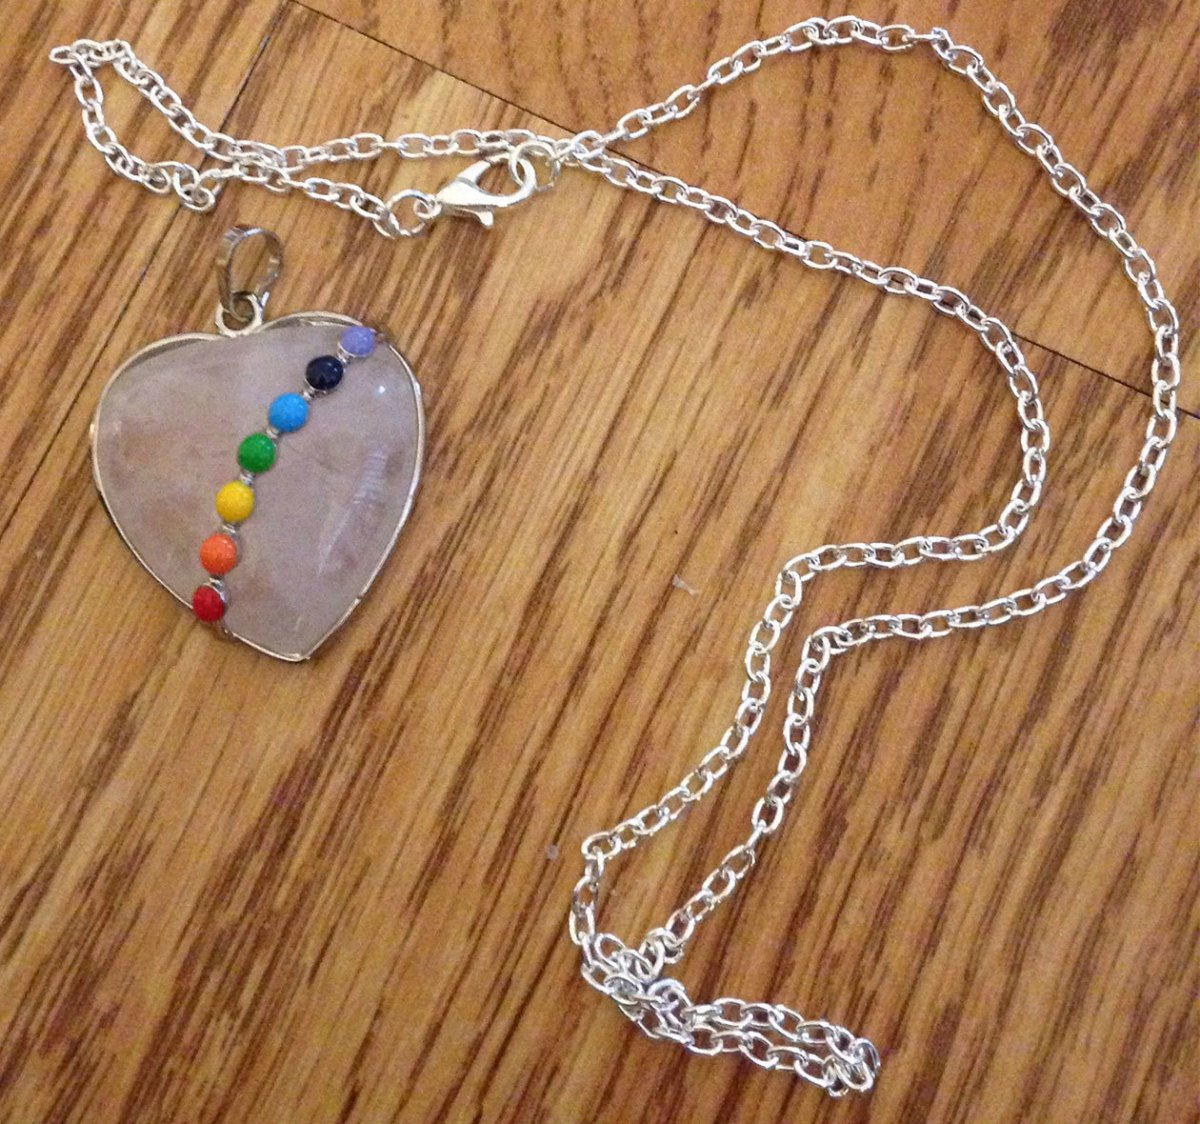 Reiki Healing Energy Infused Necklace